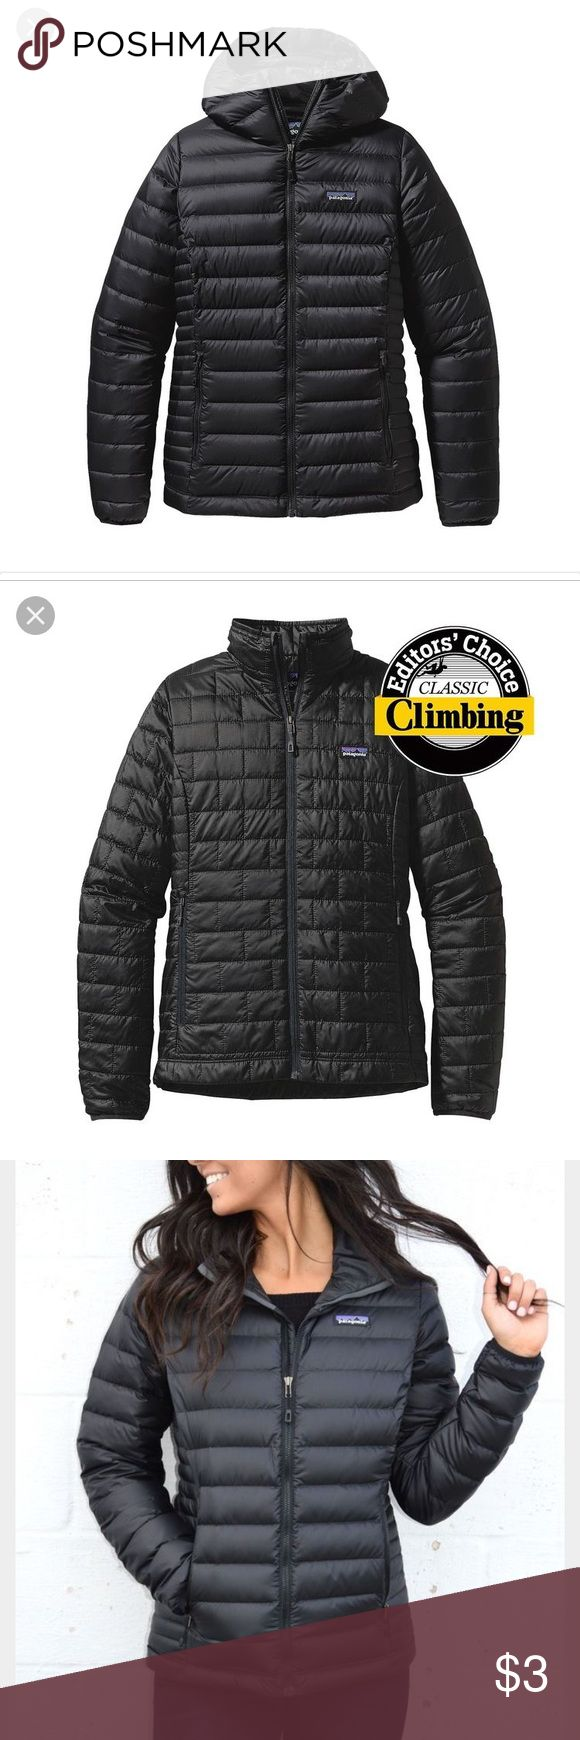 ISO Patagonia Nano Puff Jacket Looking to buy, not for sale! Willing to trade or buy! Size S or XS. Please share and/or comment if you have one or know of someone who does! Patagonia Jackets & Coats